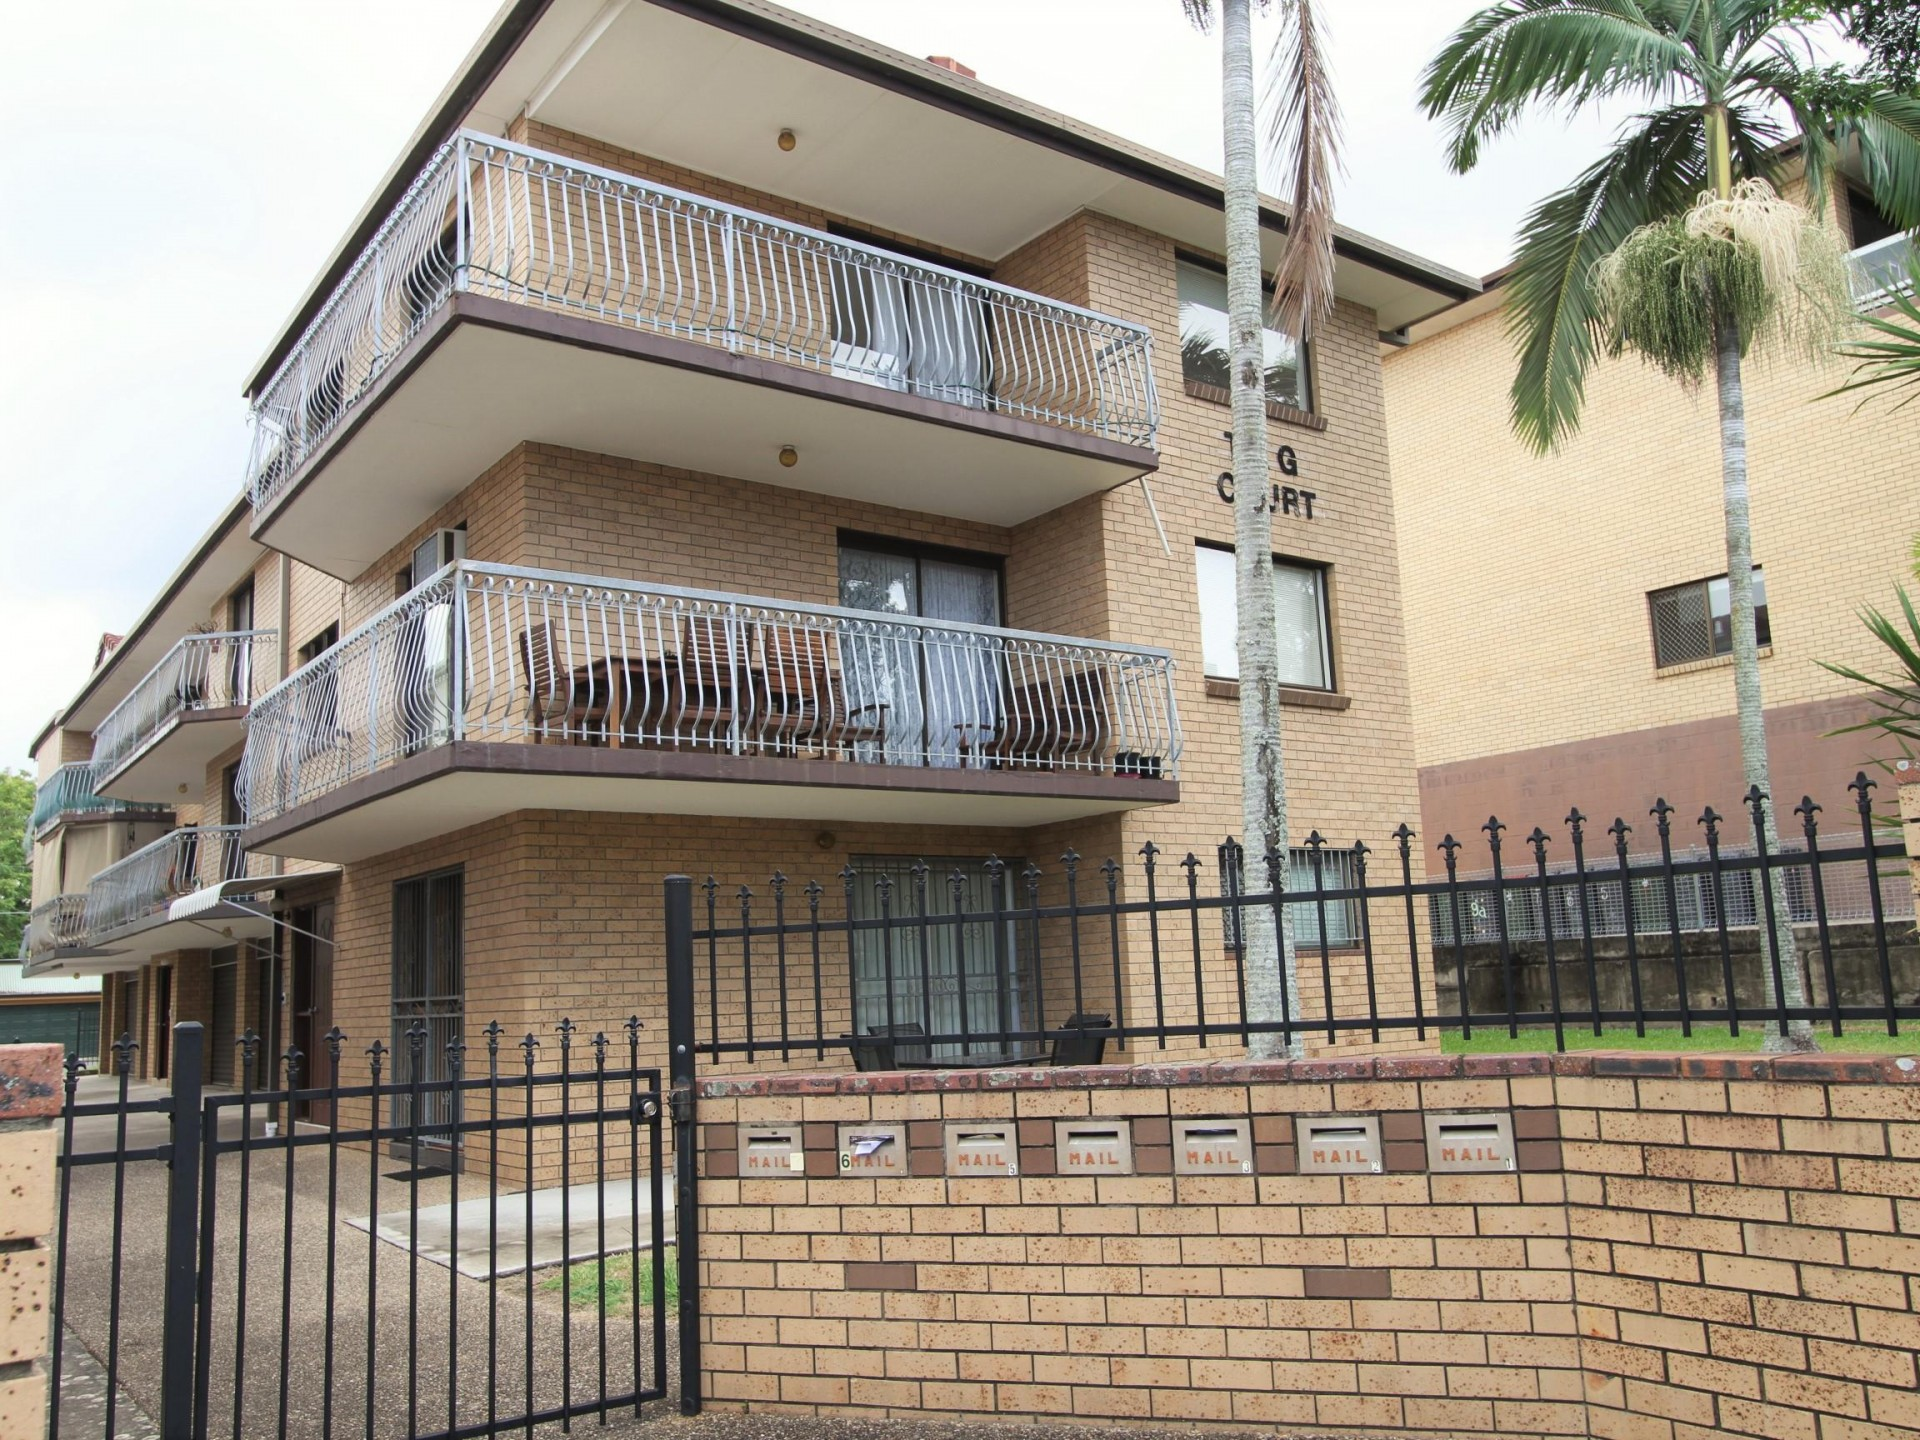 Roomy older style with balcony and lock-up garage